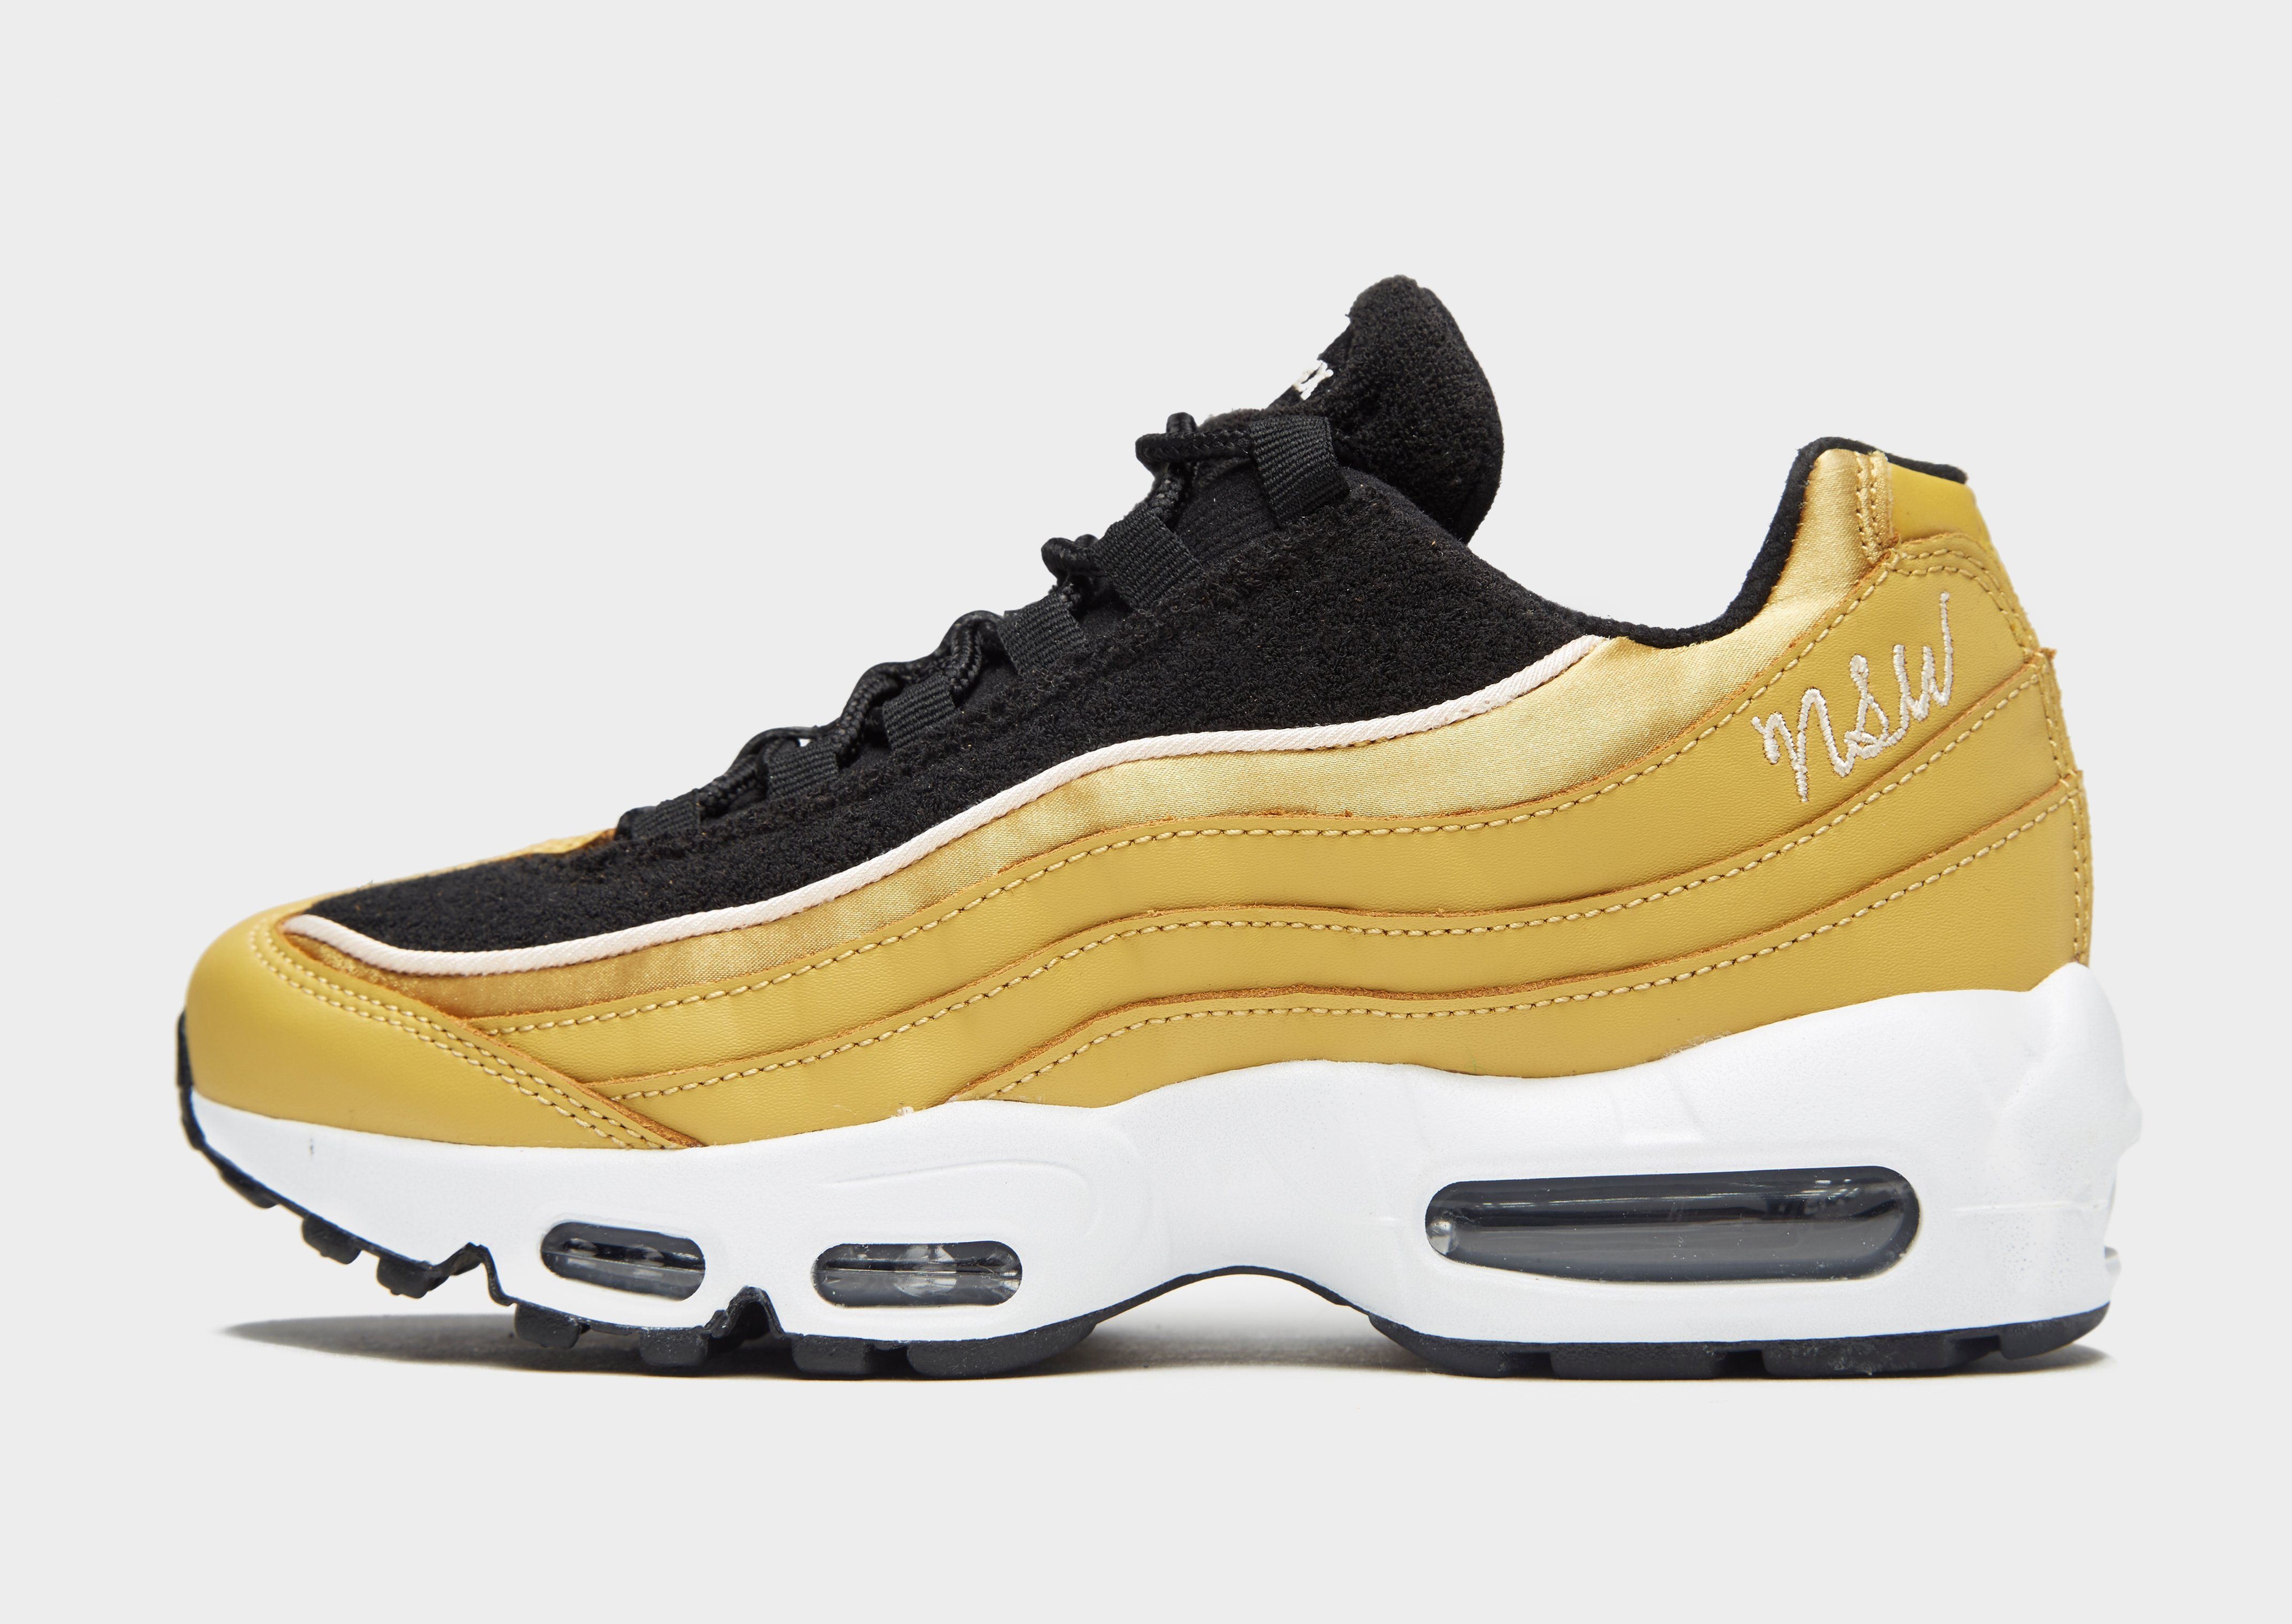 finest selection 0823c ee035 Nike Air Max 95 LX Women's | JD Sports